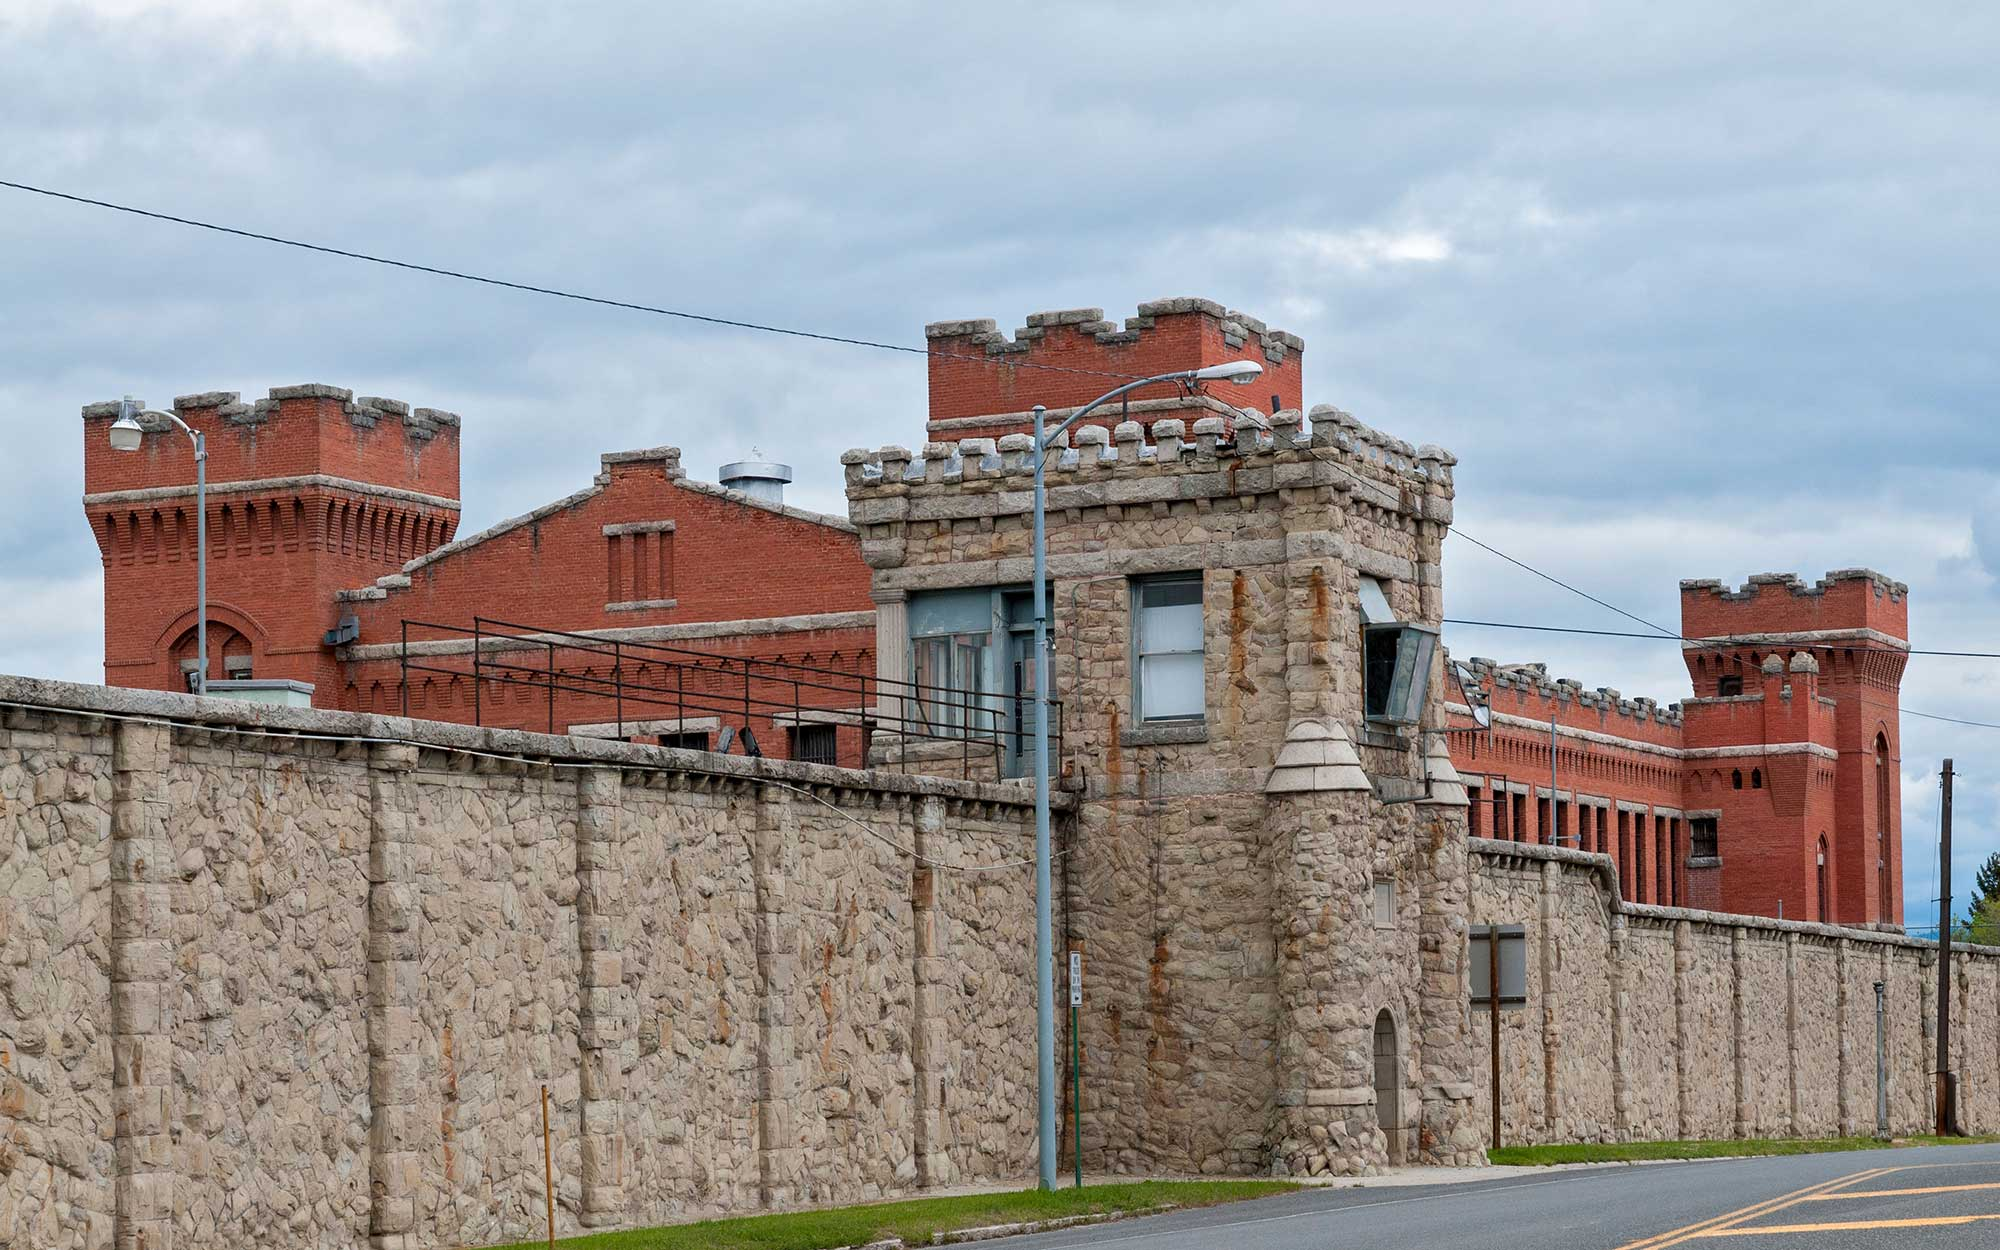 The Old Montana Prison, Deer Lodge, MT